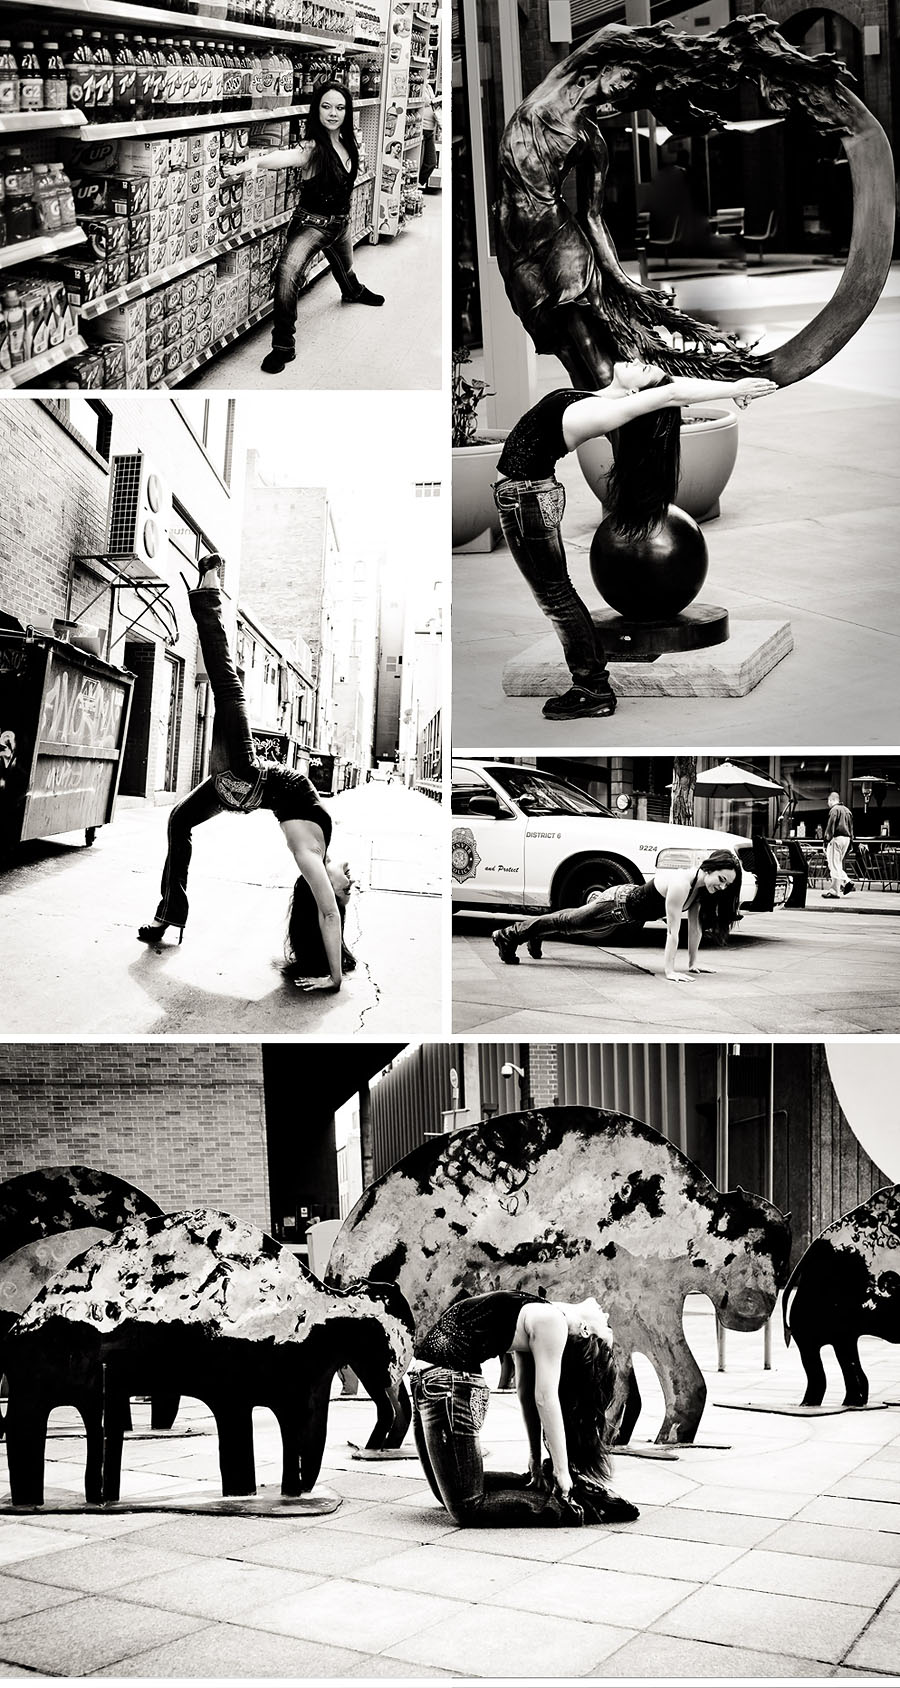 yoga in public - collage of black and white yoga poses with polic car public art in an alley